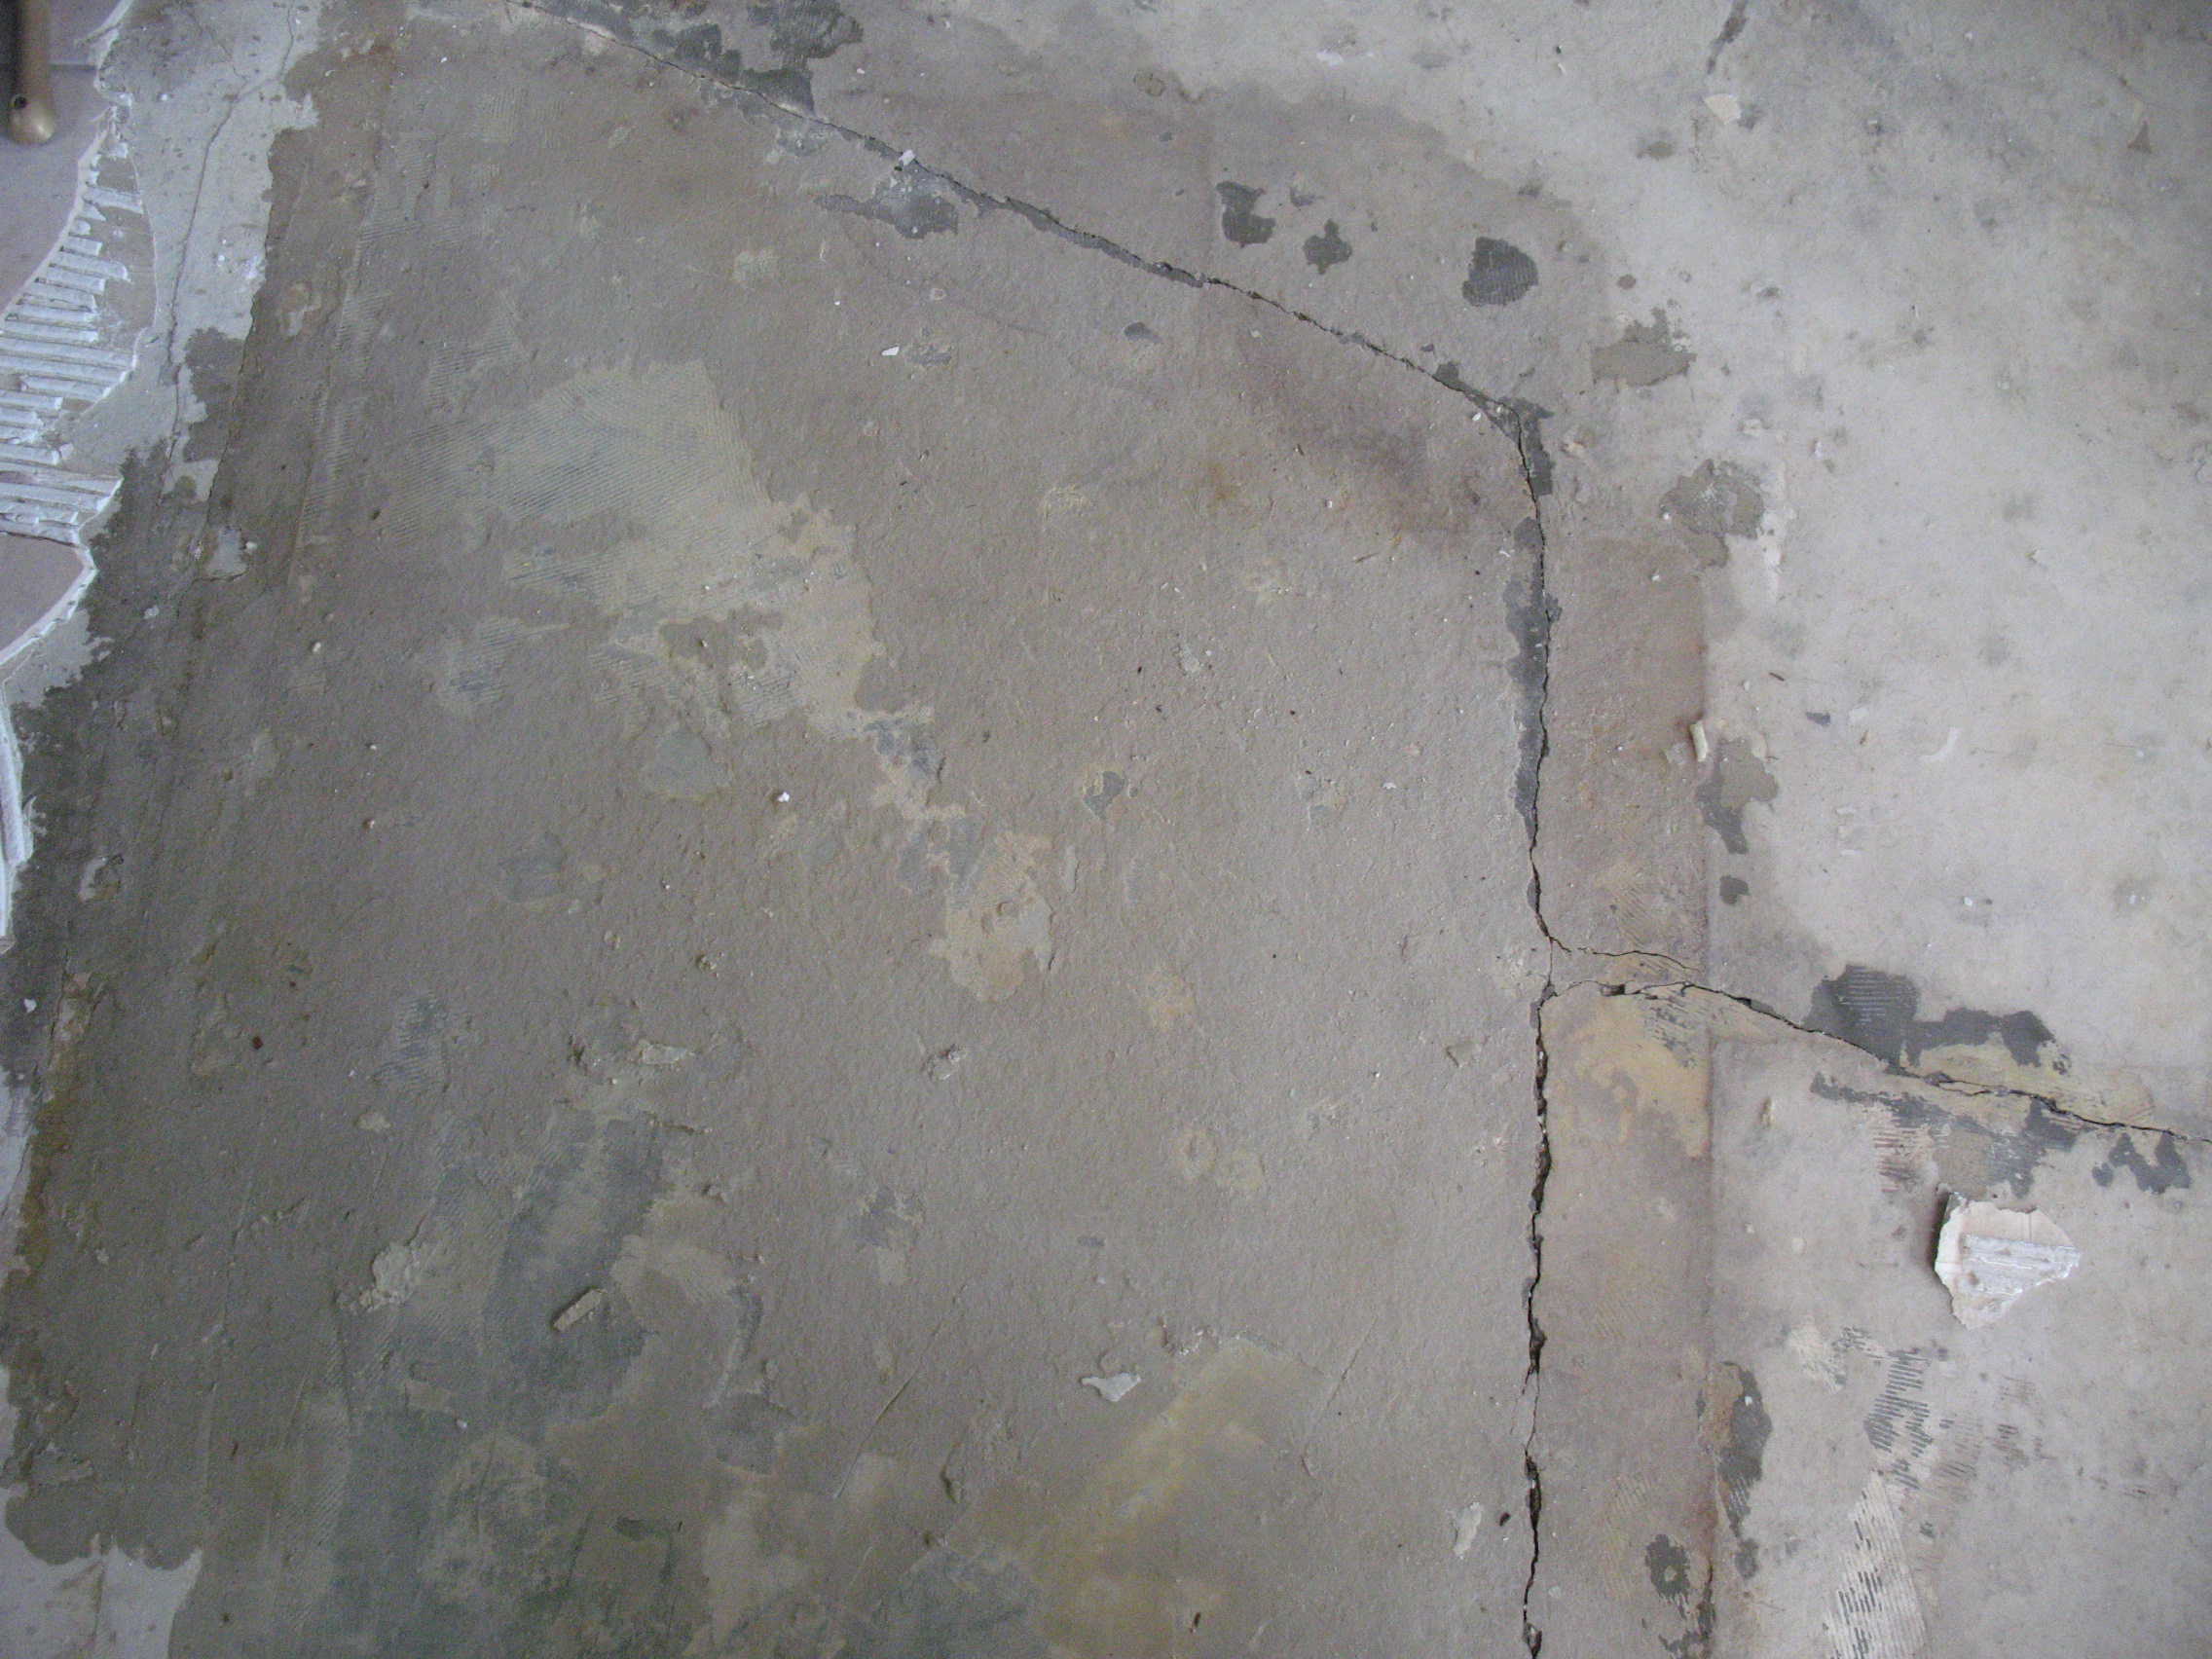 Concrete Bathroom Floor Removal : Mold on concrete under flooring